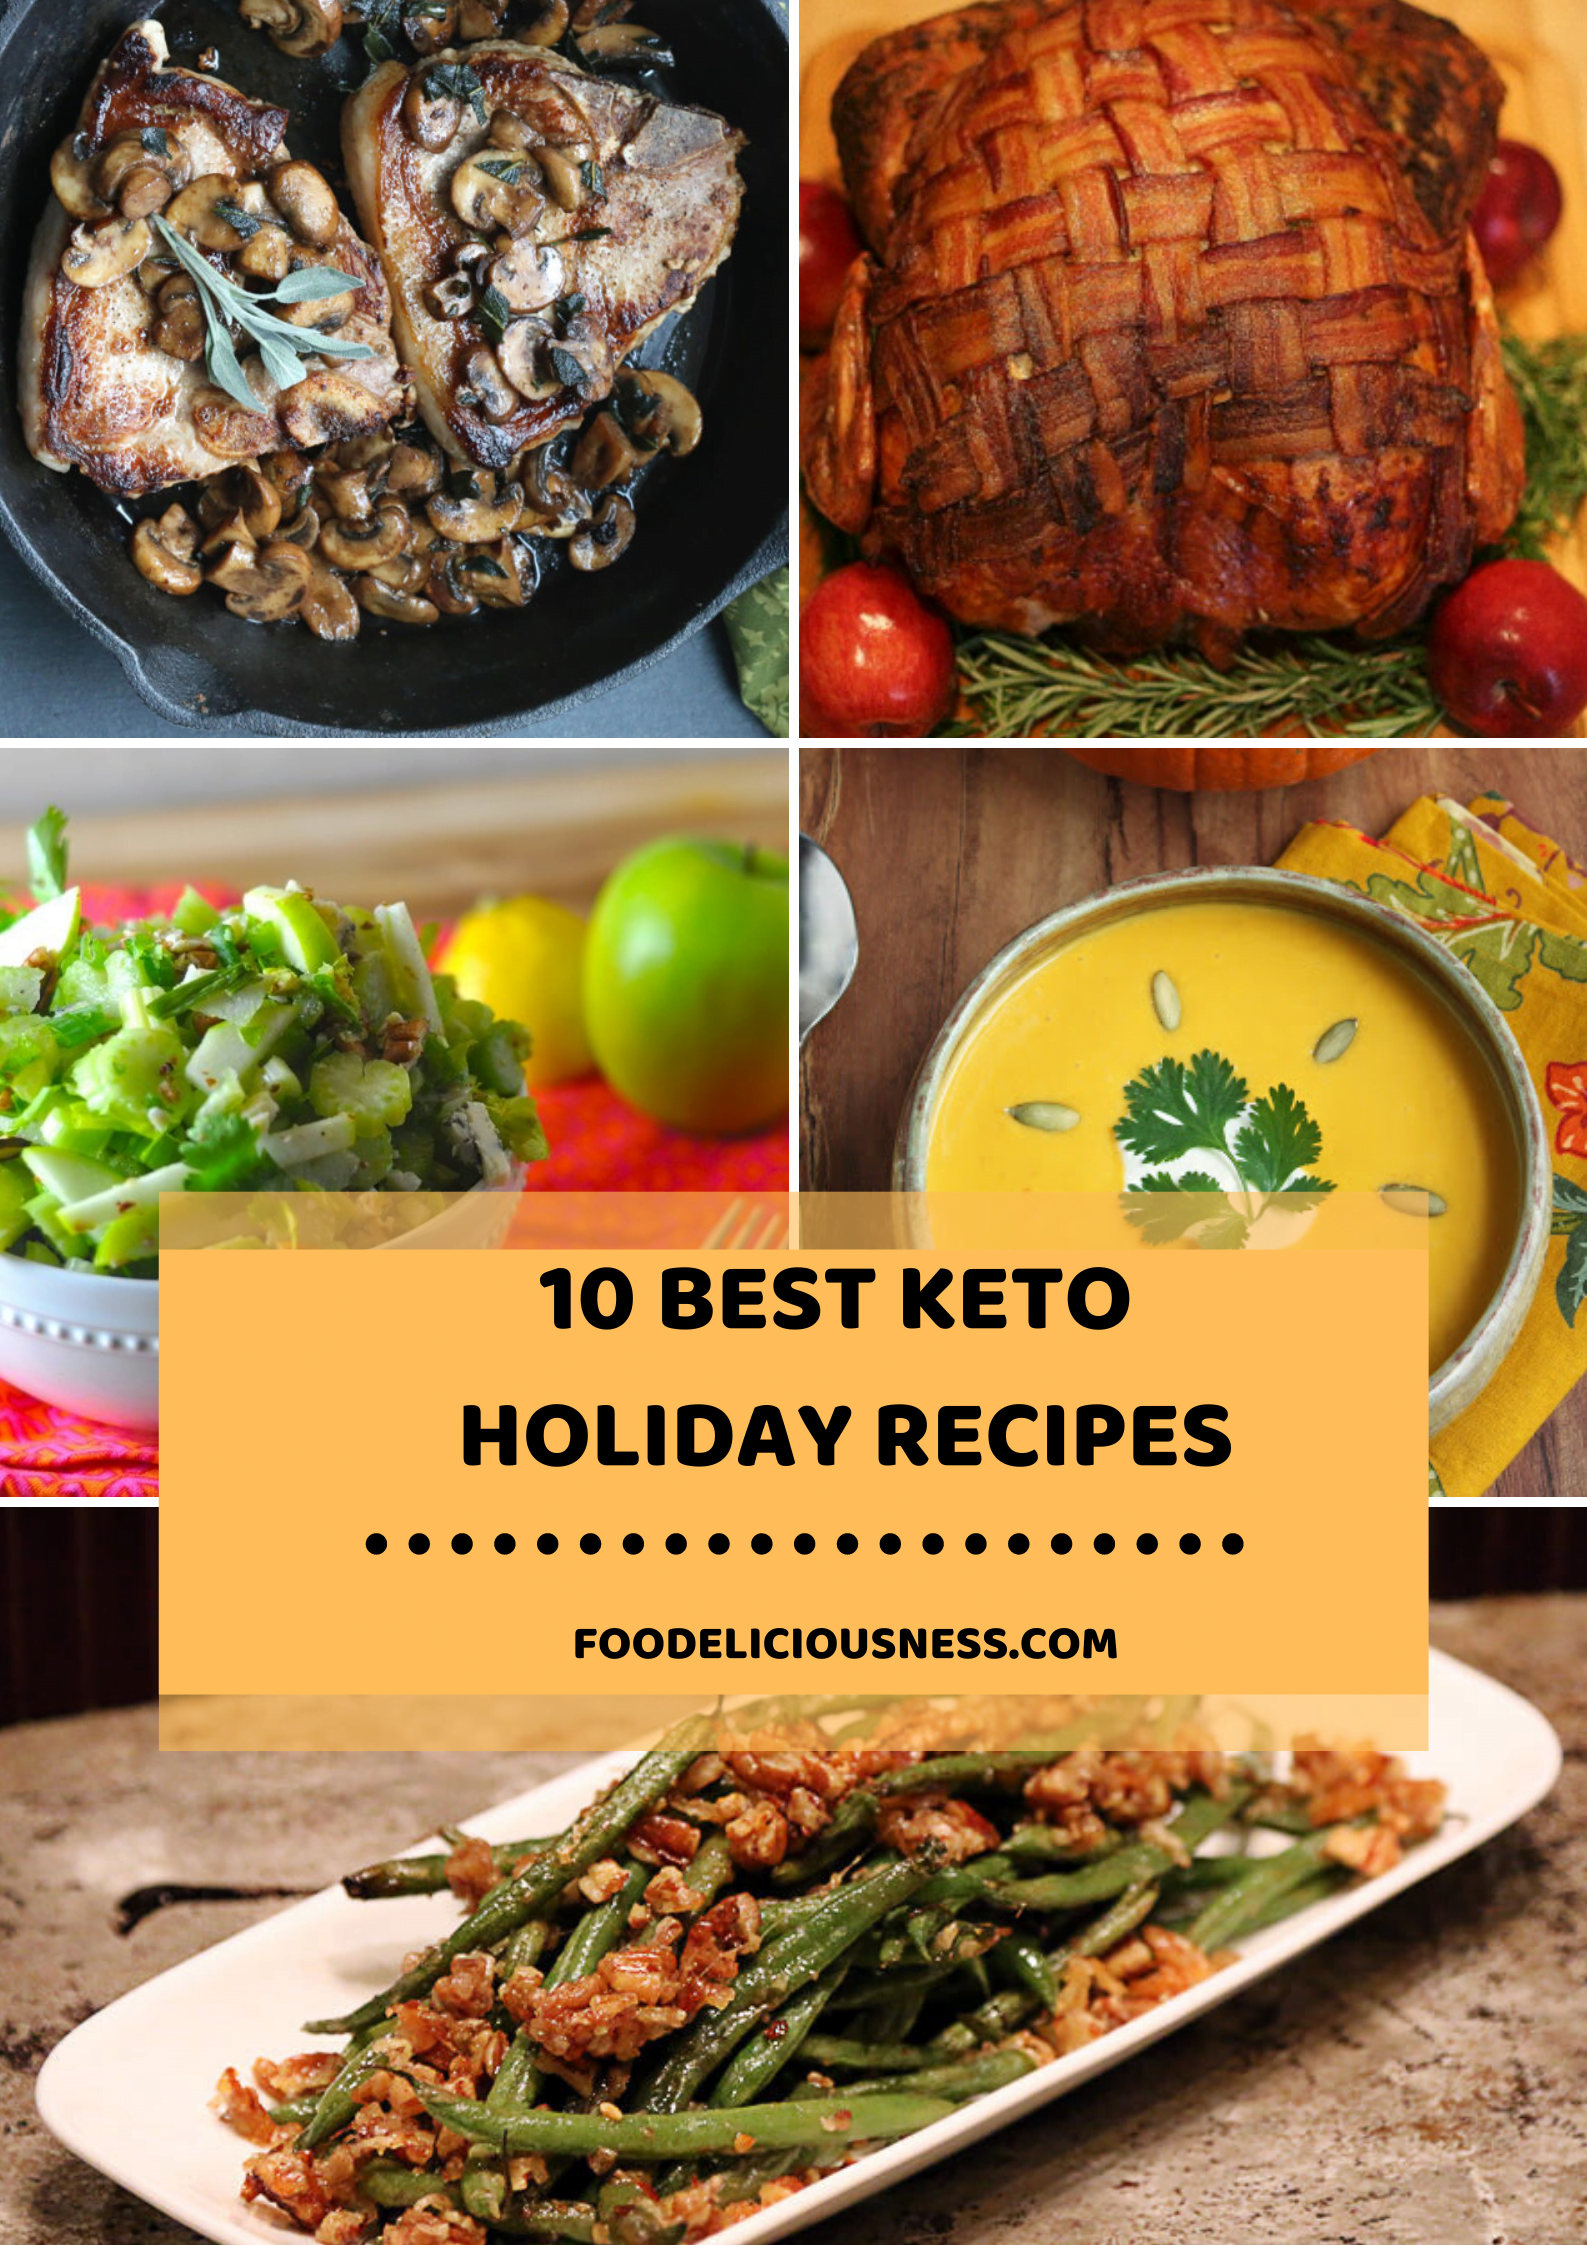 If you are a real Keto soldier you will not resist trying these 10 yummy low carb recipes. New dessert chocolate recipes... yeah you definitely should try! These recipes are also great for special occasions, to show your friends that Keto food can be delicious too! #ketoholidayrecipesdesserts #ketoholidayrecipeslowcarb #ketofood @foodeliciousness